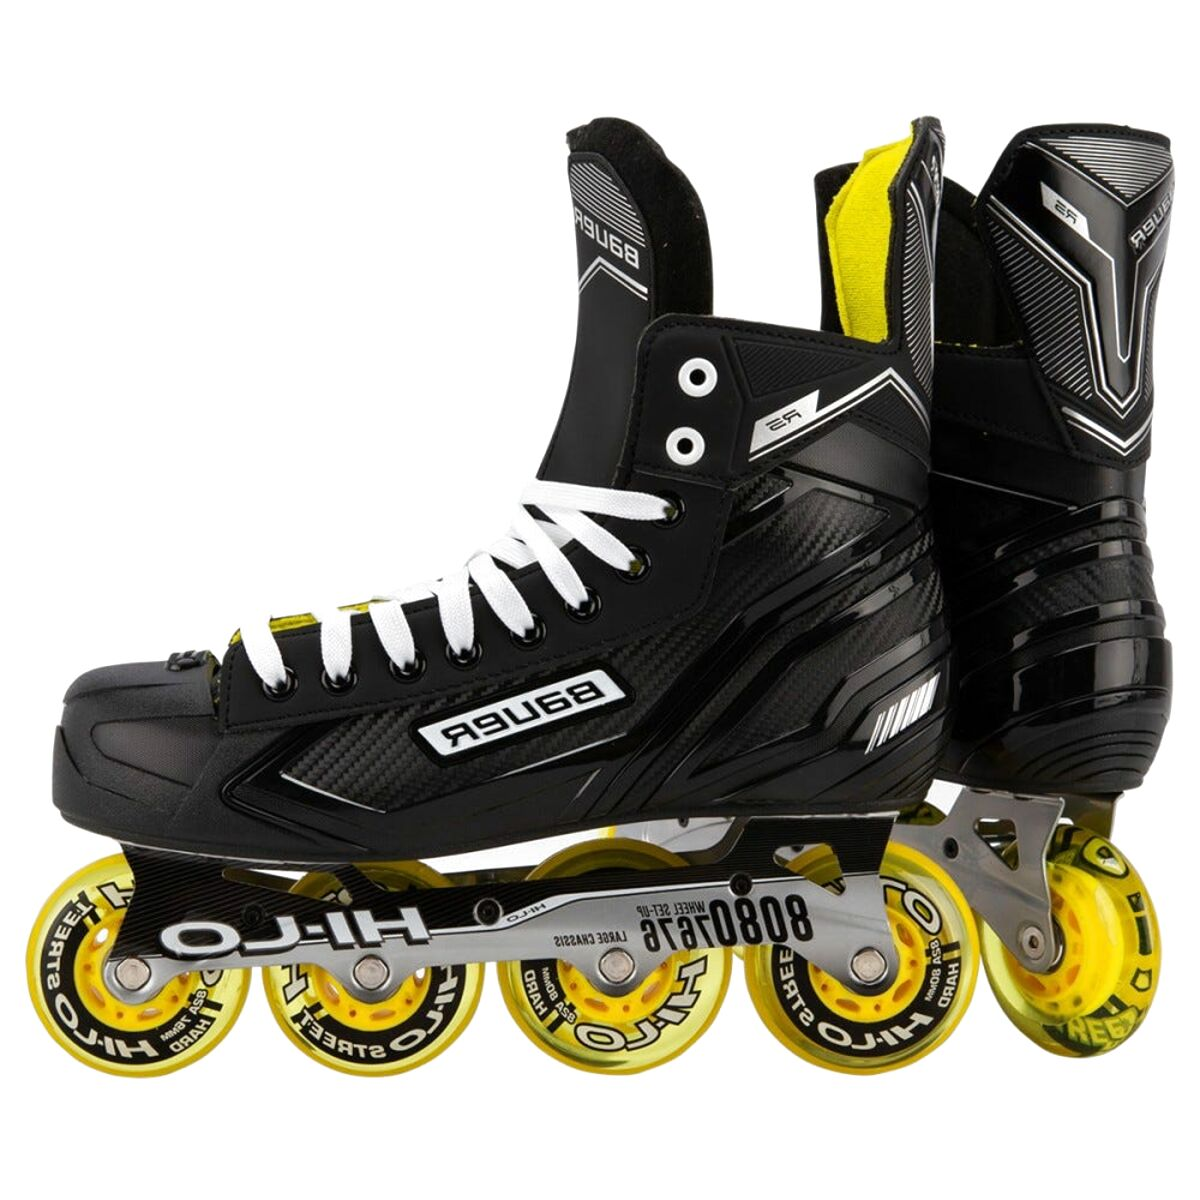 bauer roller hockey skates for sale